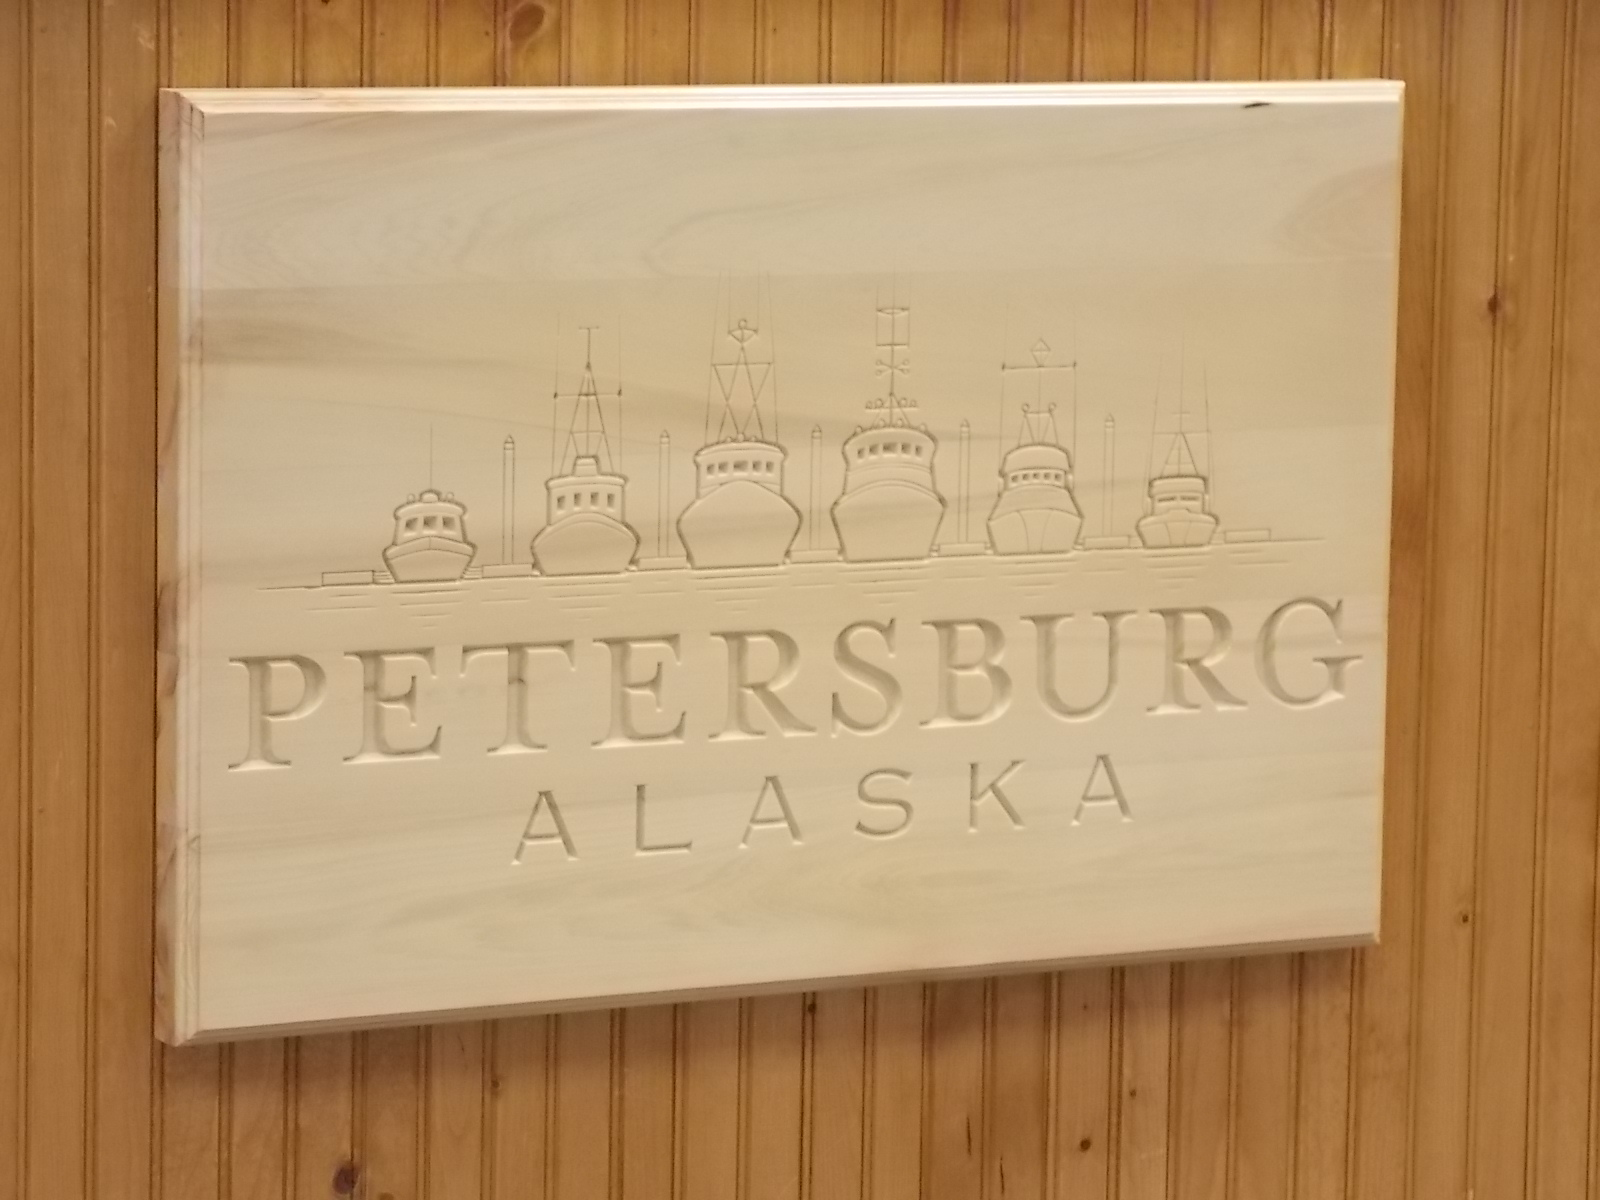 Petersburg borough supports new electoral map